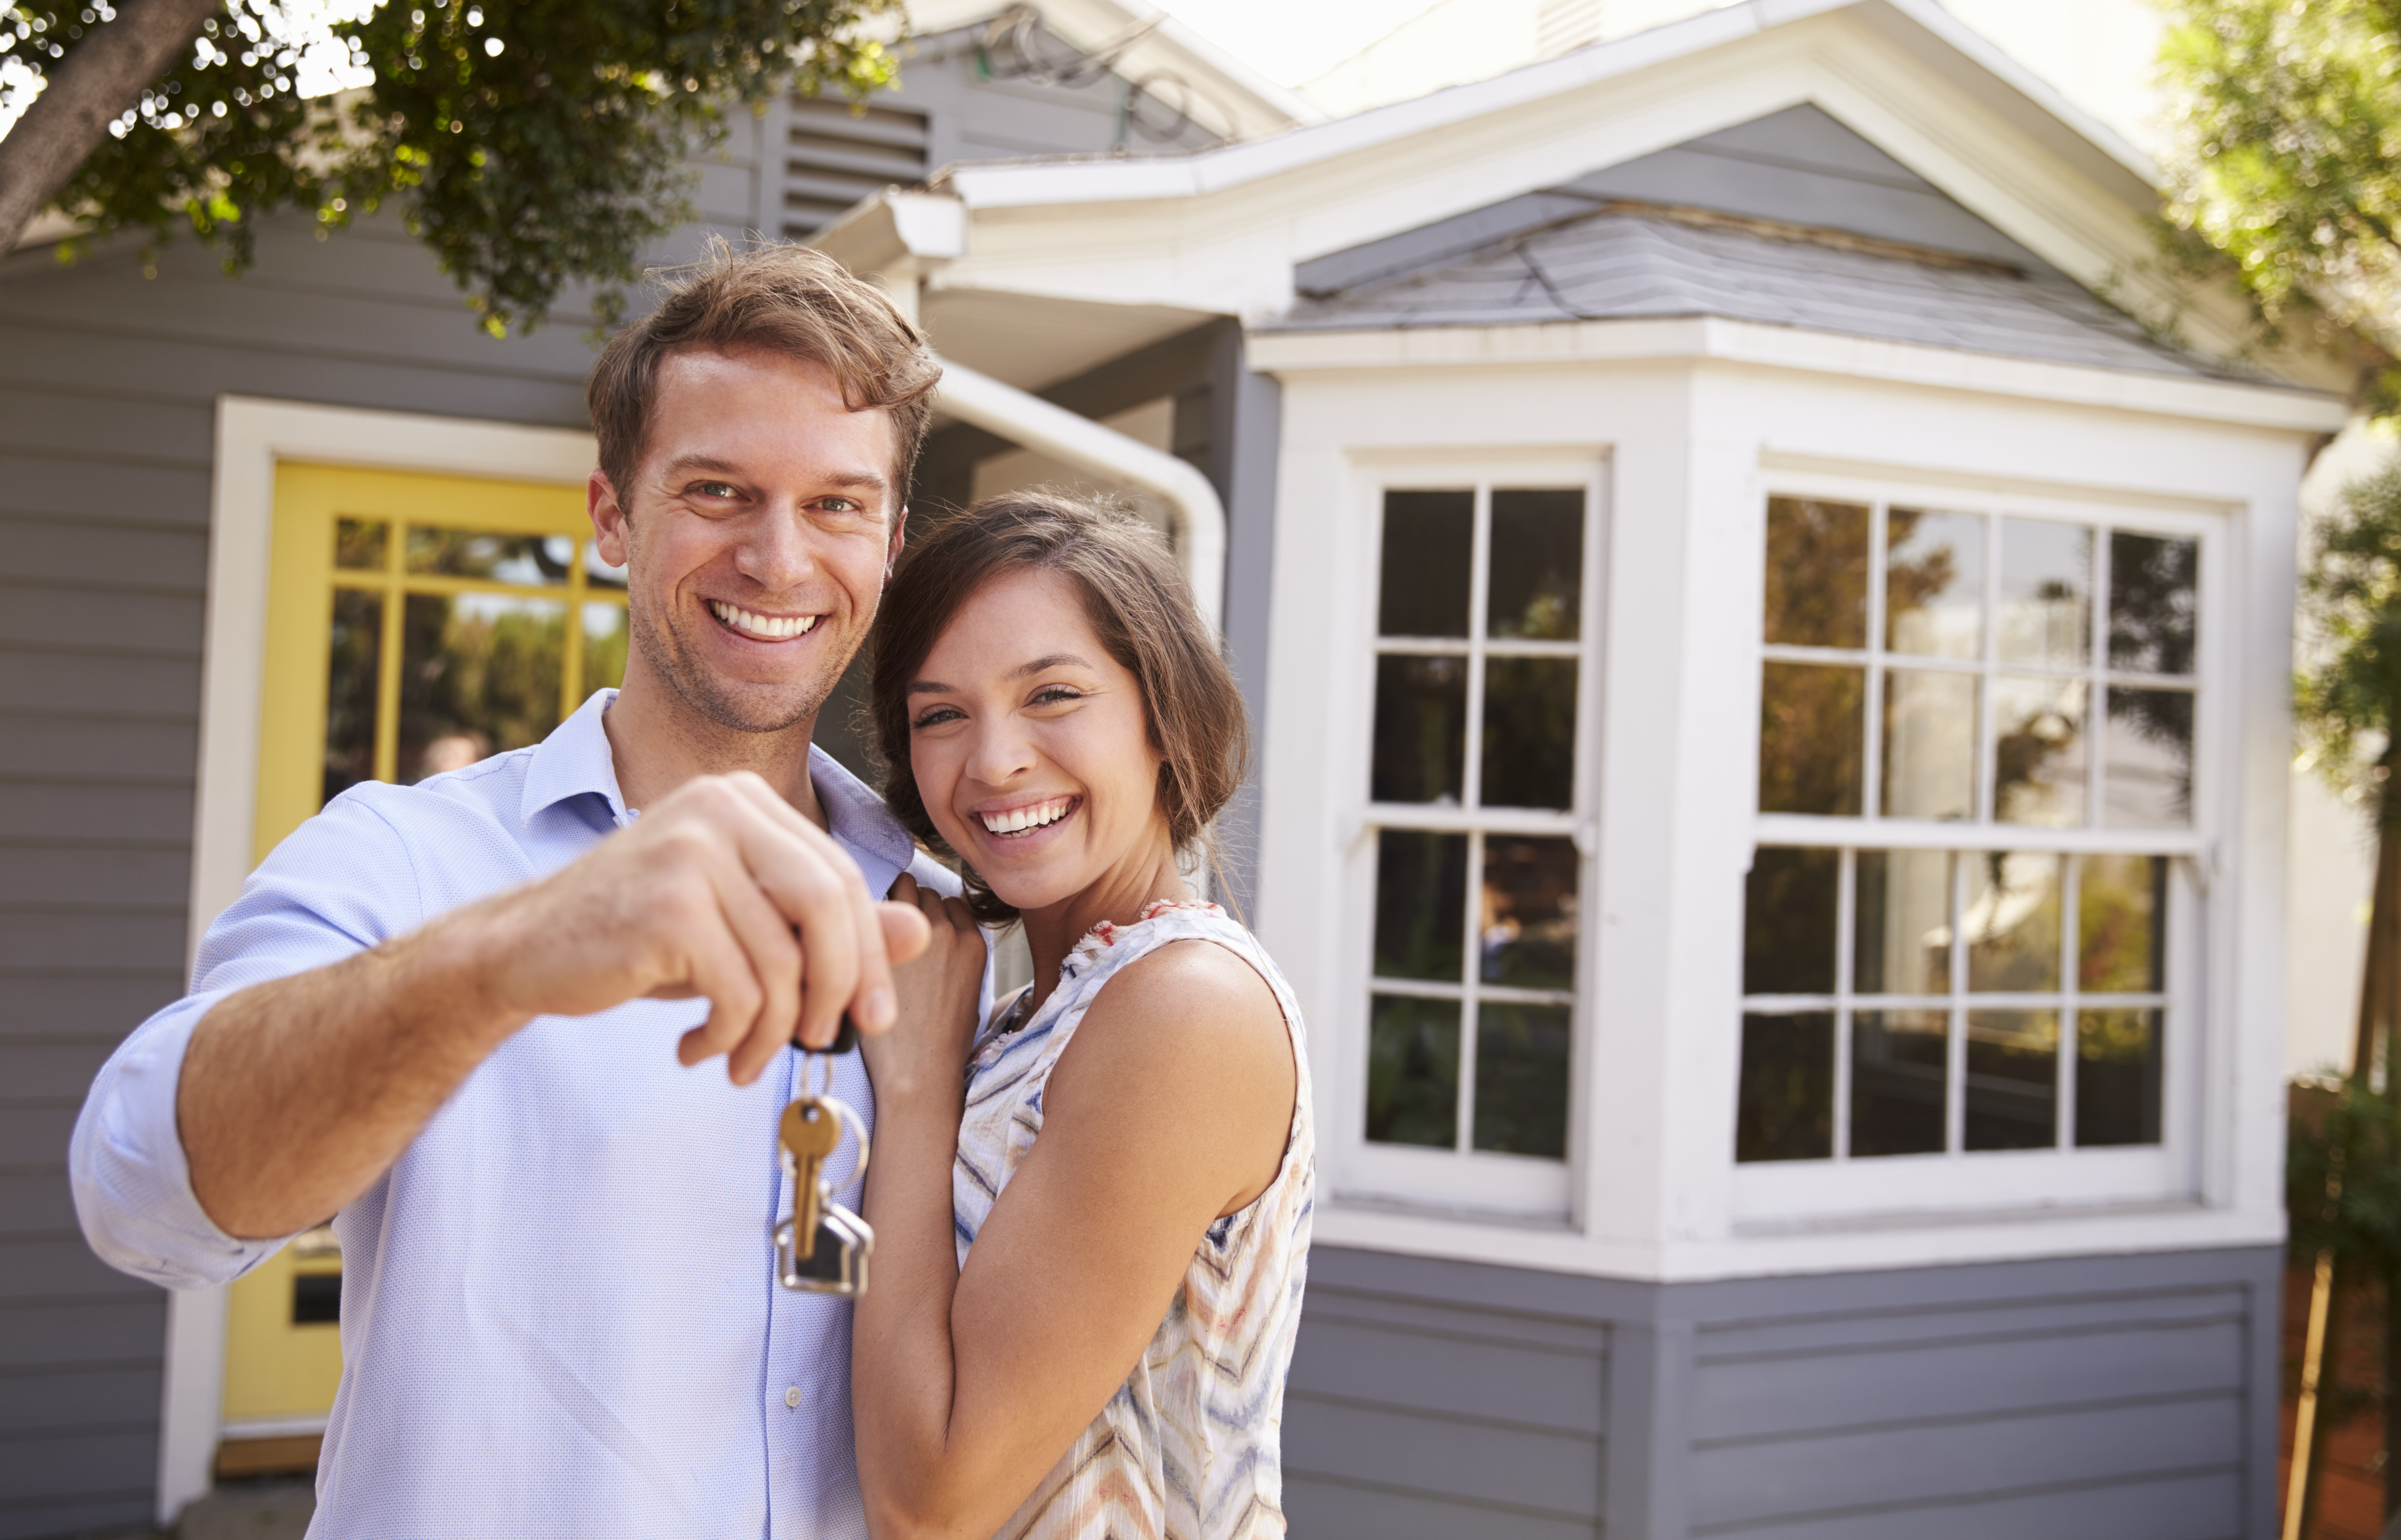 Things Every Homeowner Should Know Before Buying a House